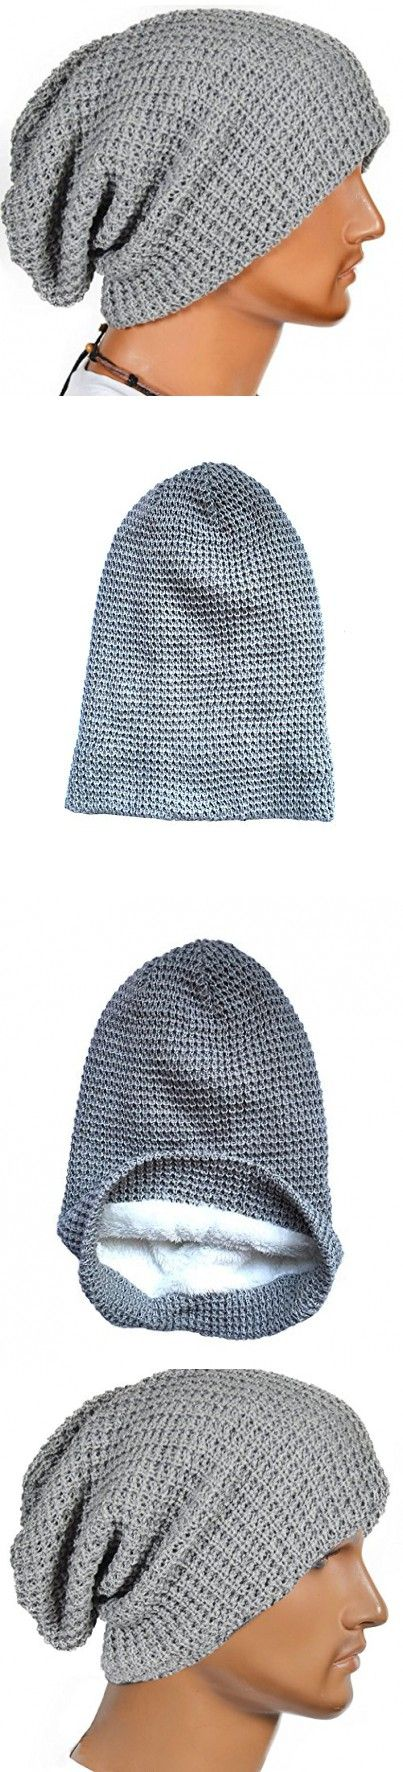 Unisex Slouchy Winter Hats Knitted Beanie Caps Men Women Soft Warm Ski Hat (Gray)